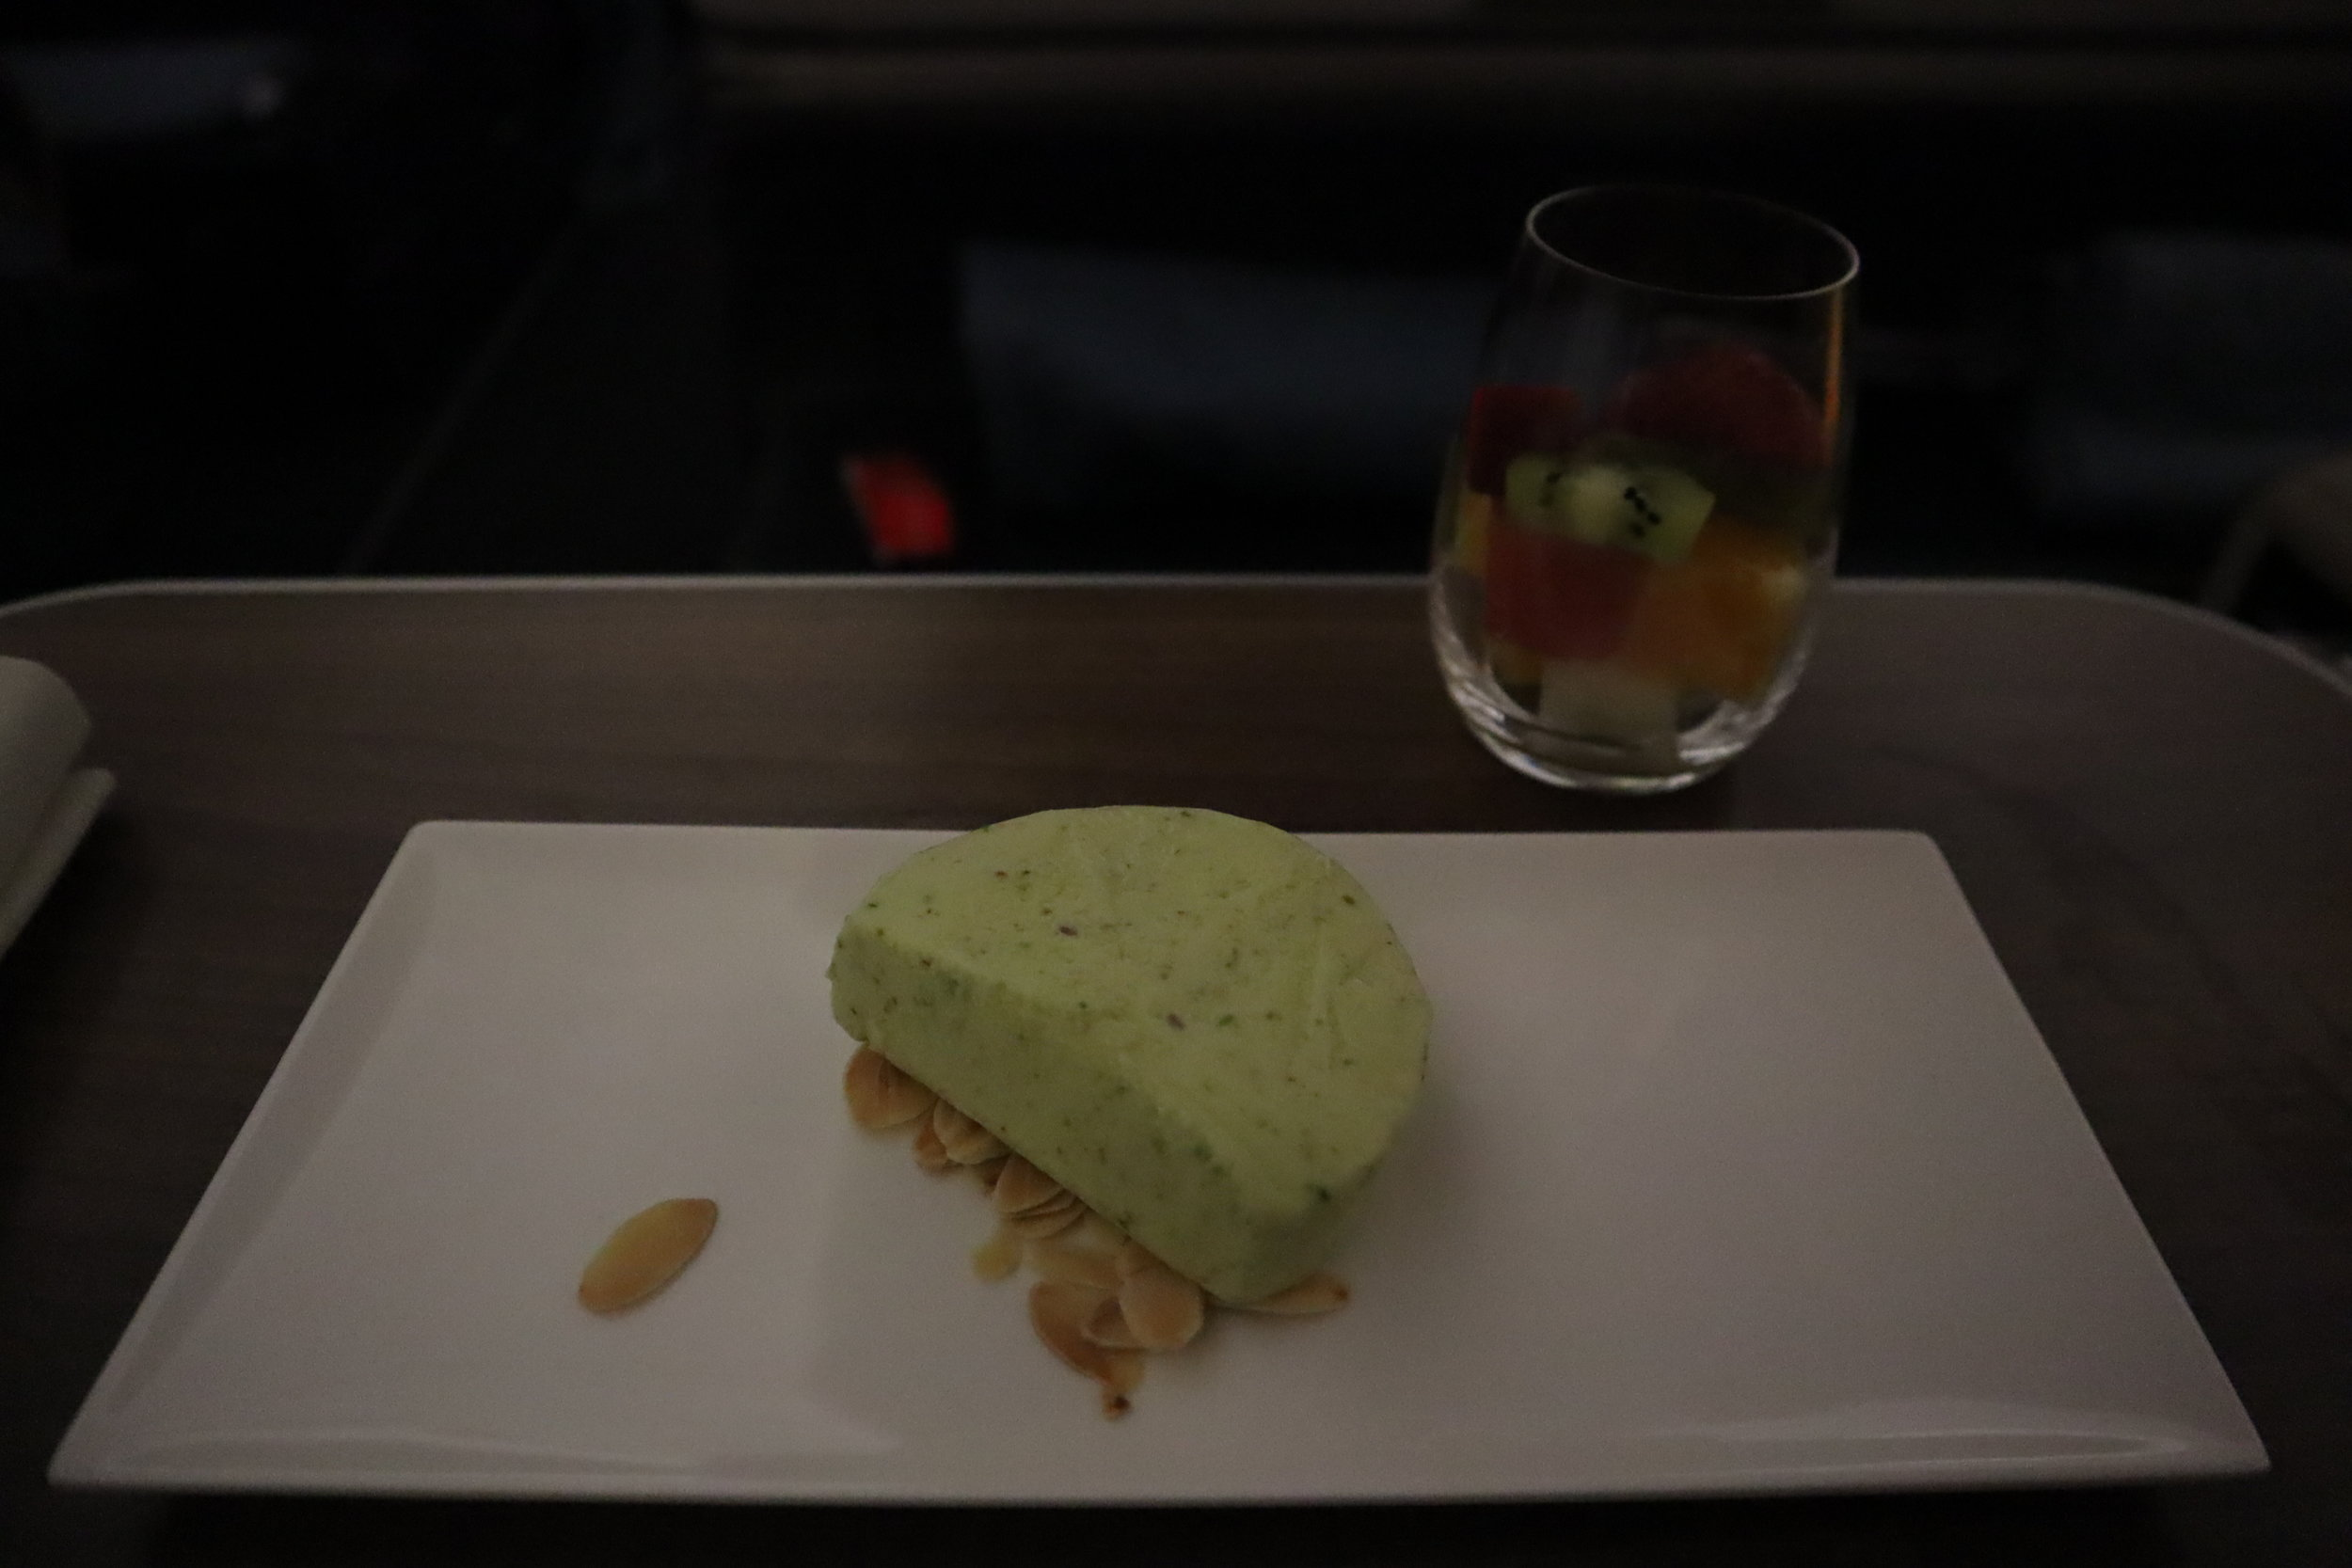 Turkish Airlines A330 business class – Pistachio ice cream